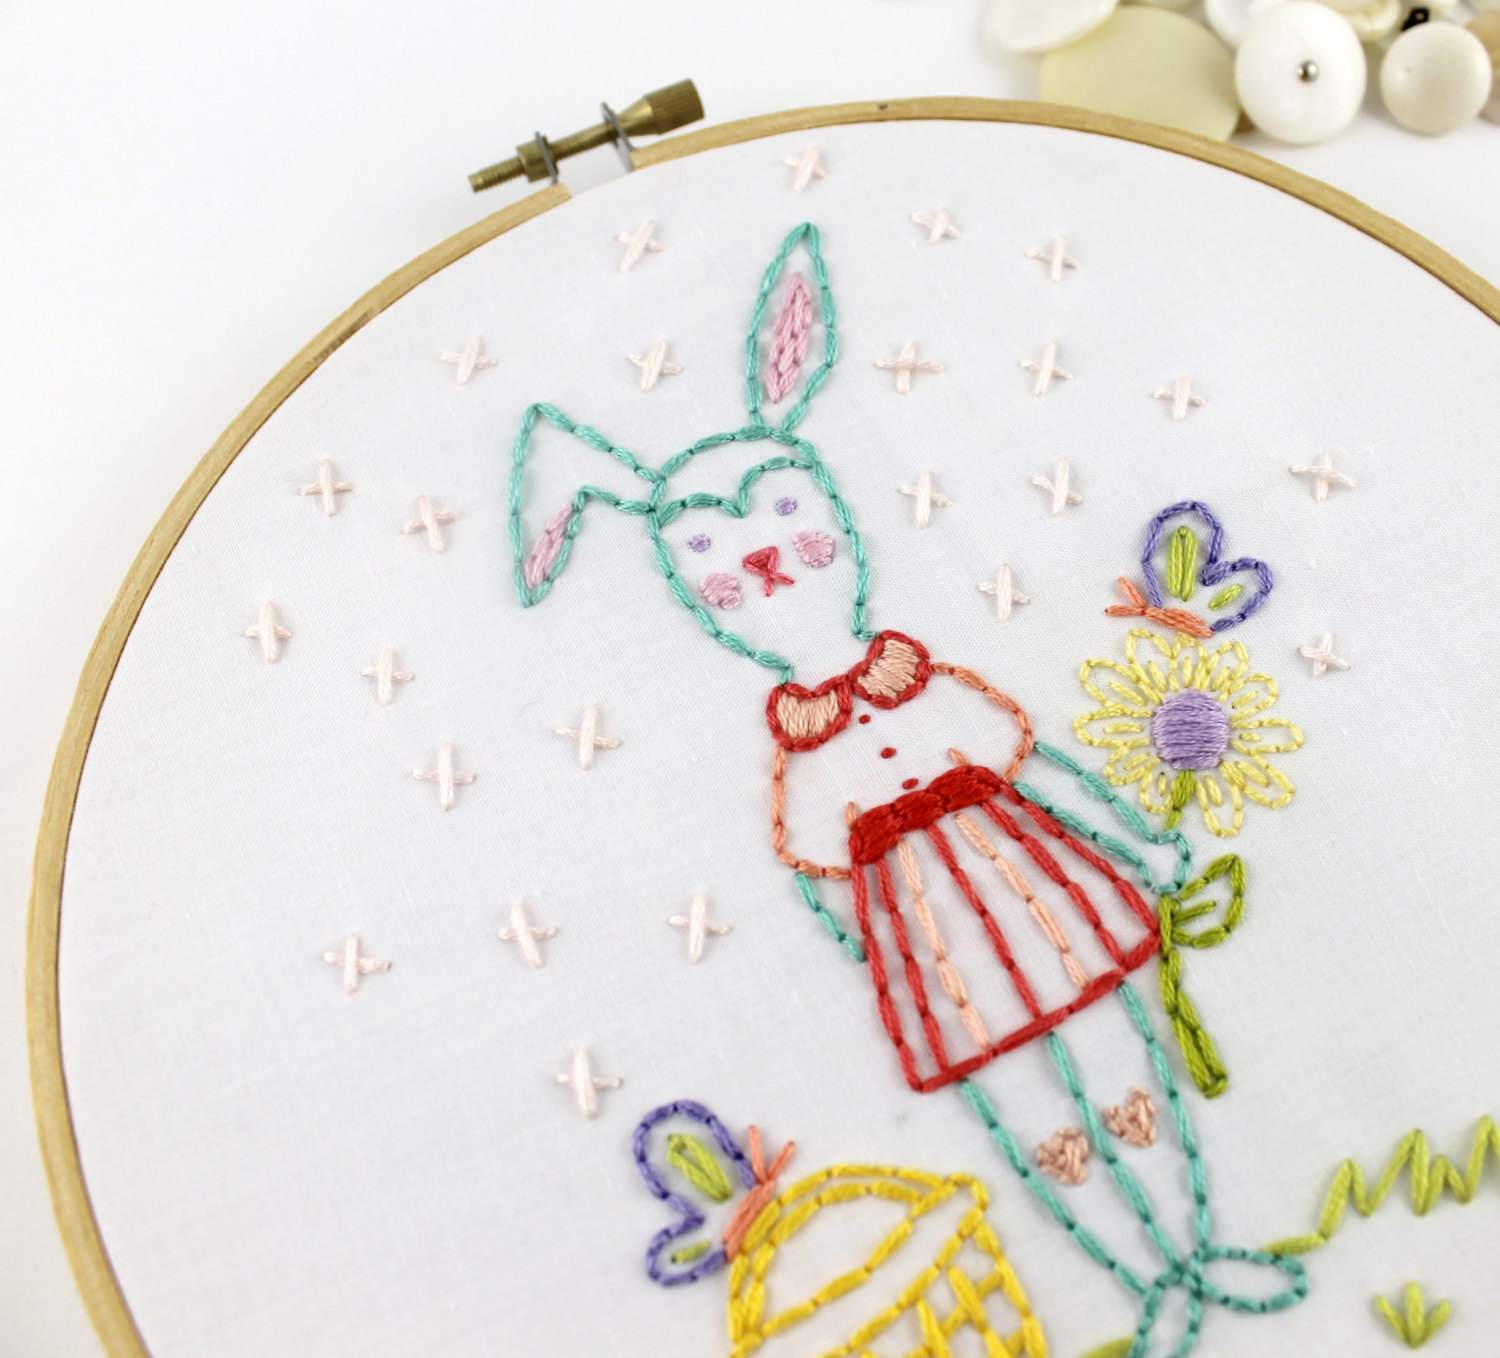 11 Embroidery Projects To Stitch For Easter